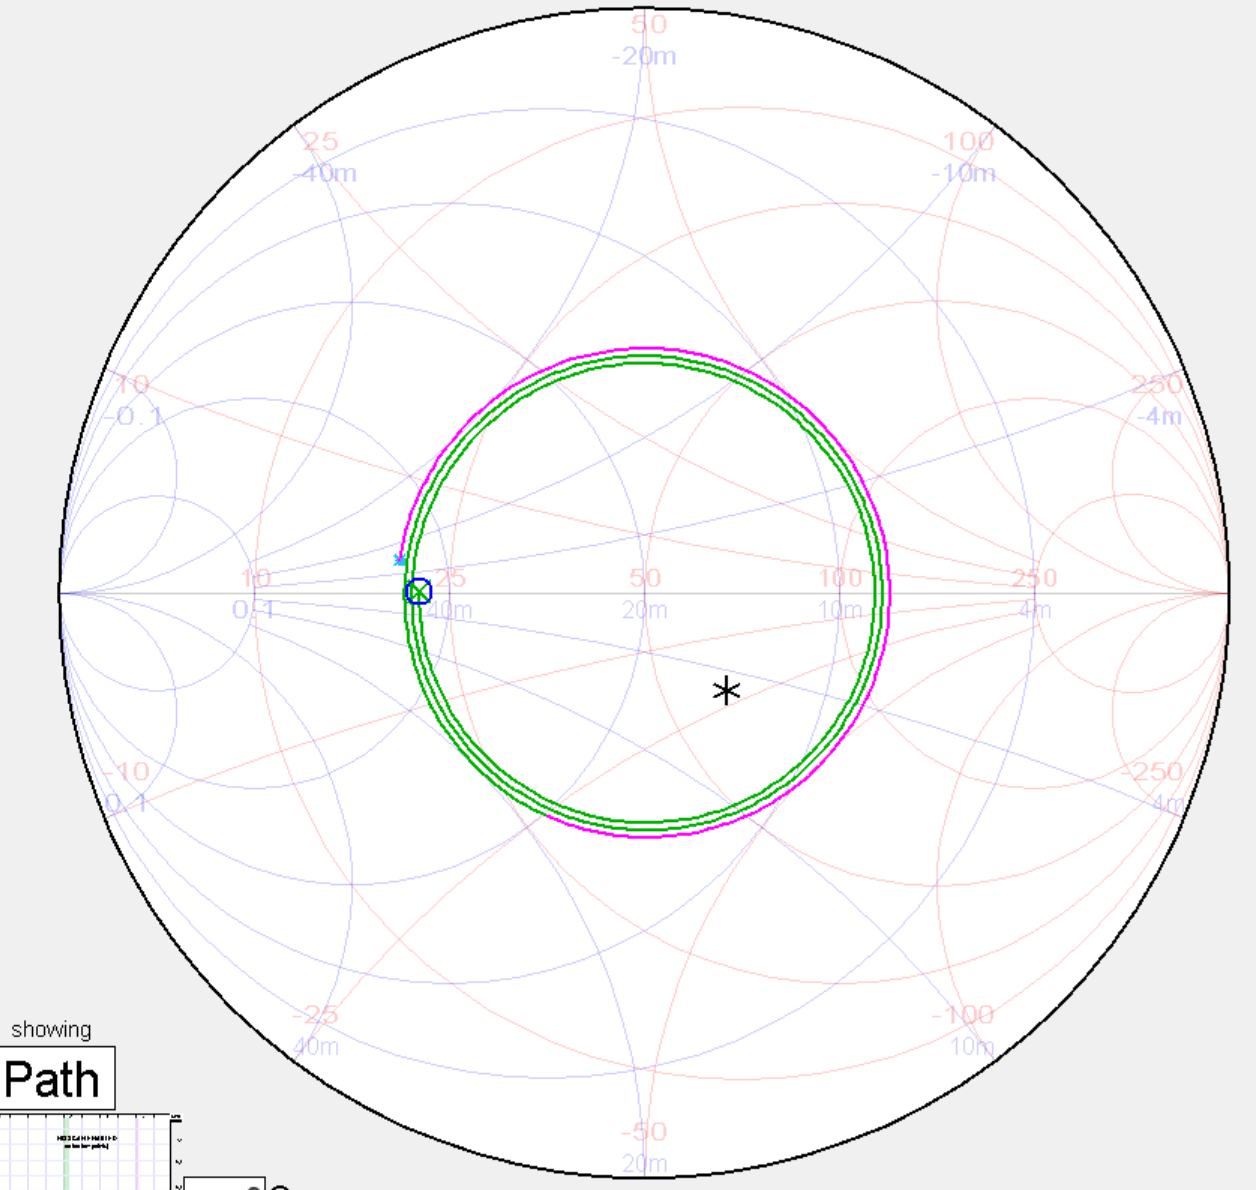 Hf Antenna Matched Network For A Radio Broadcasting